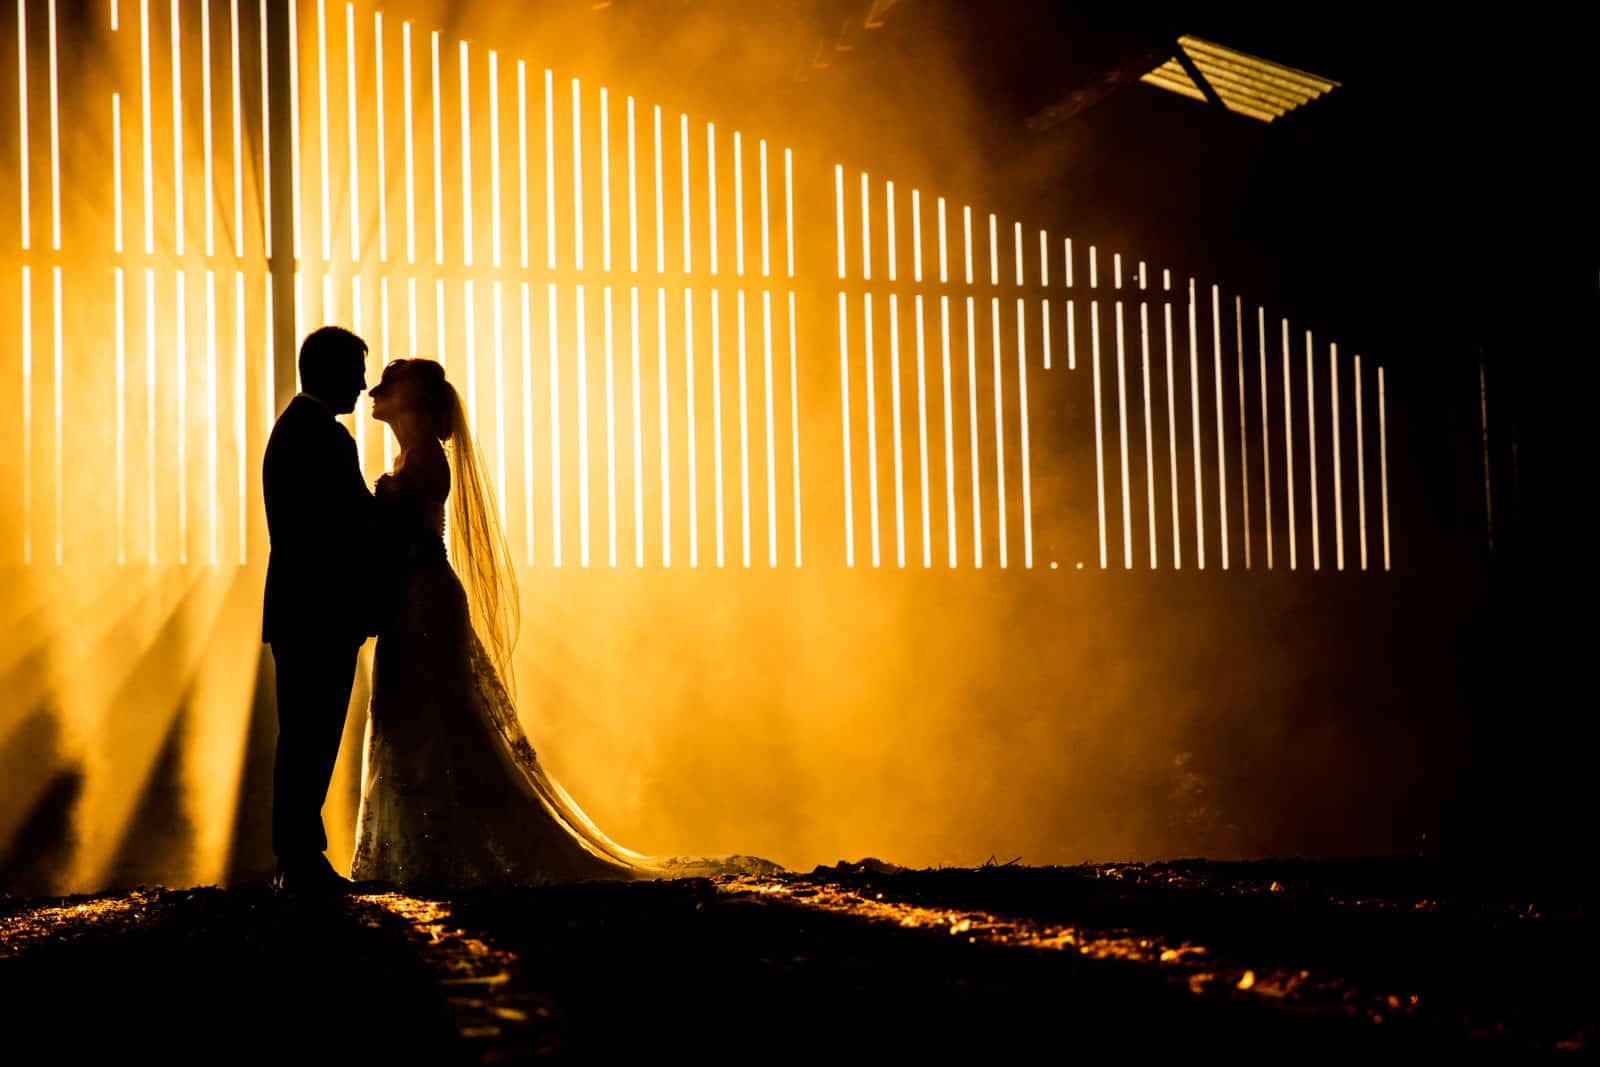 Silhouette of a couple kissing in a barn, using magmod, off camera flash and smoke grenade